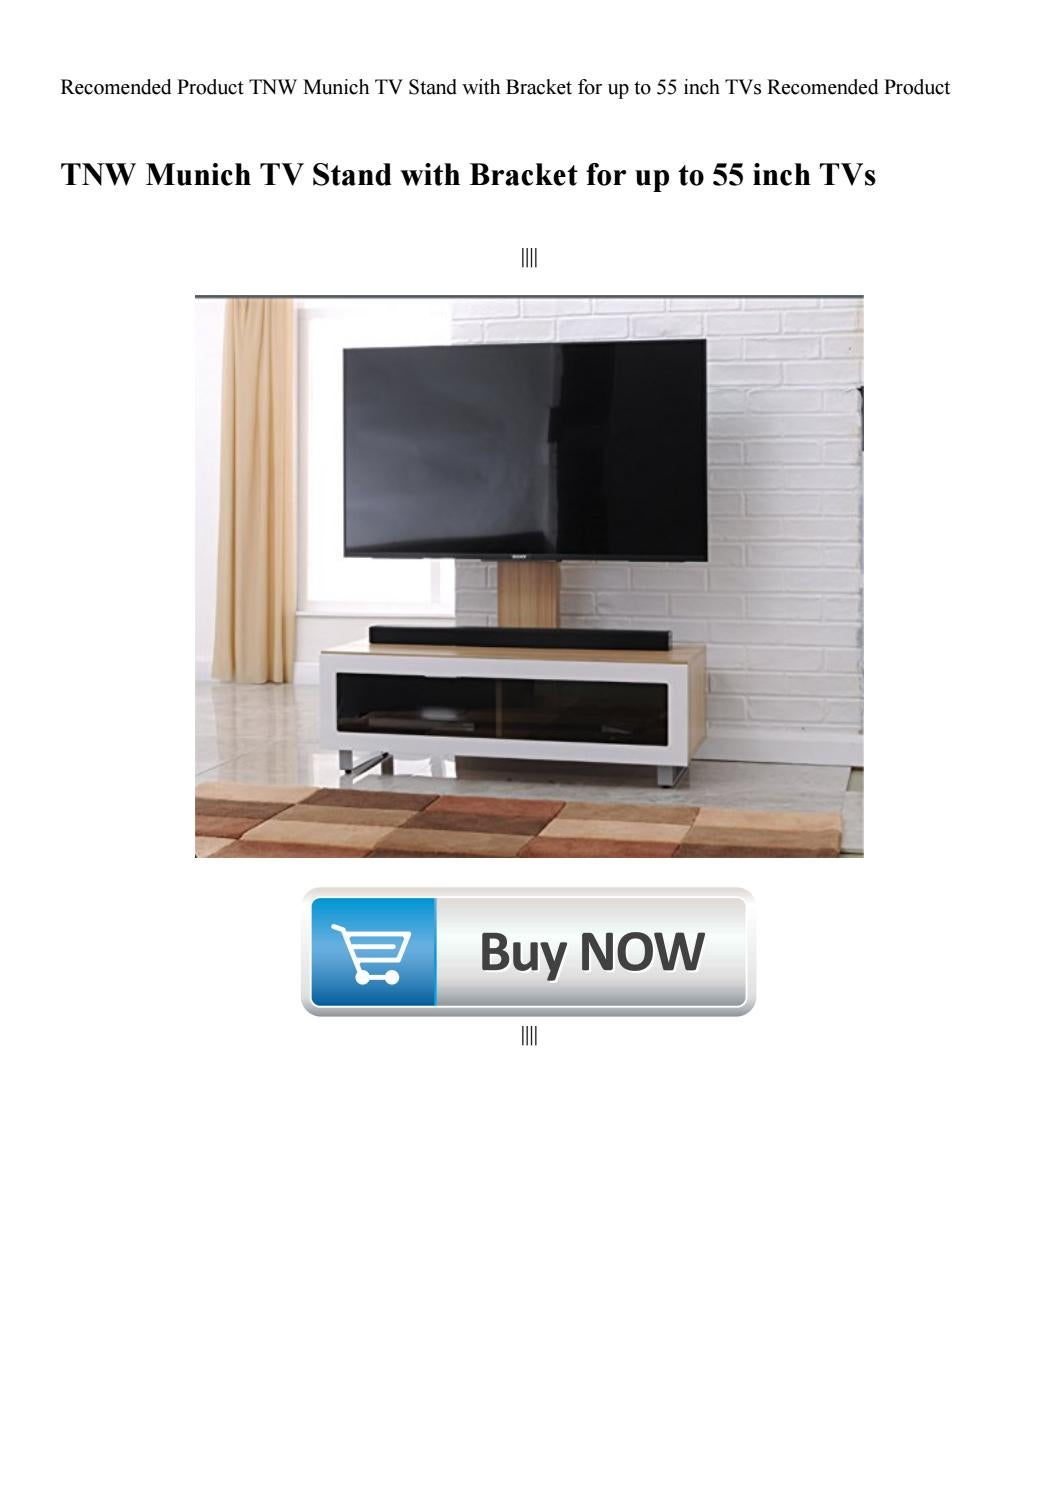 Recomended Product Tnw Munich Tv Stand With Bracket For Up To 55 Inch Tvs Recomended Product By Dashawnwiley69 Issuu